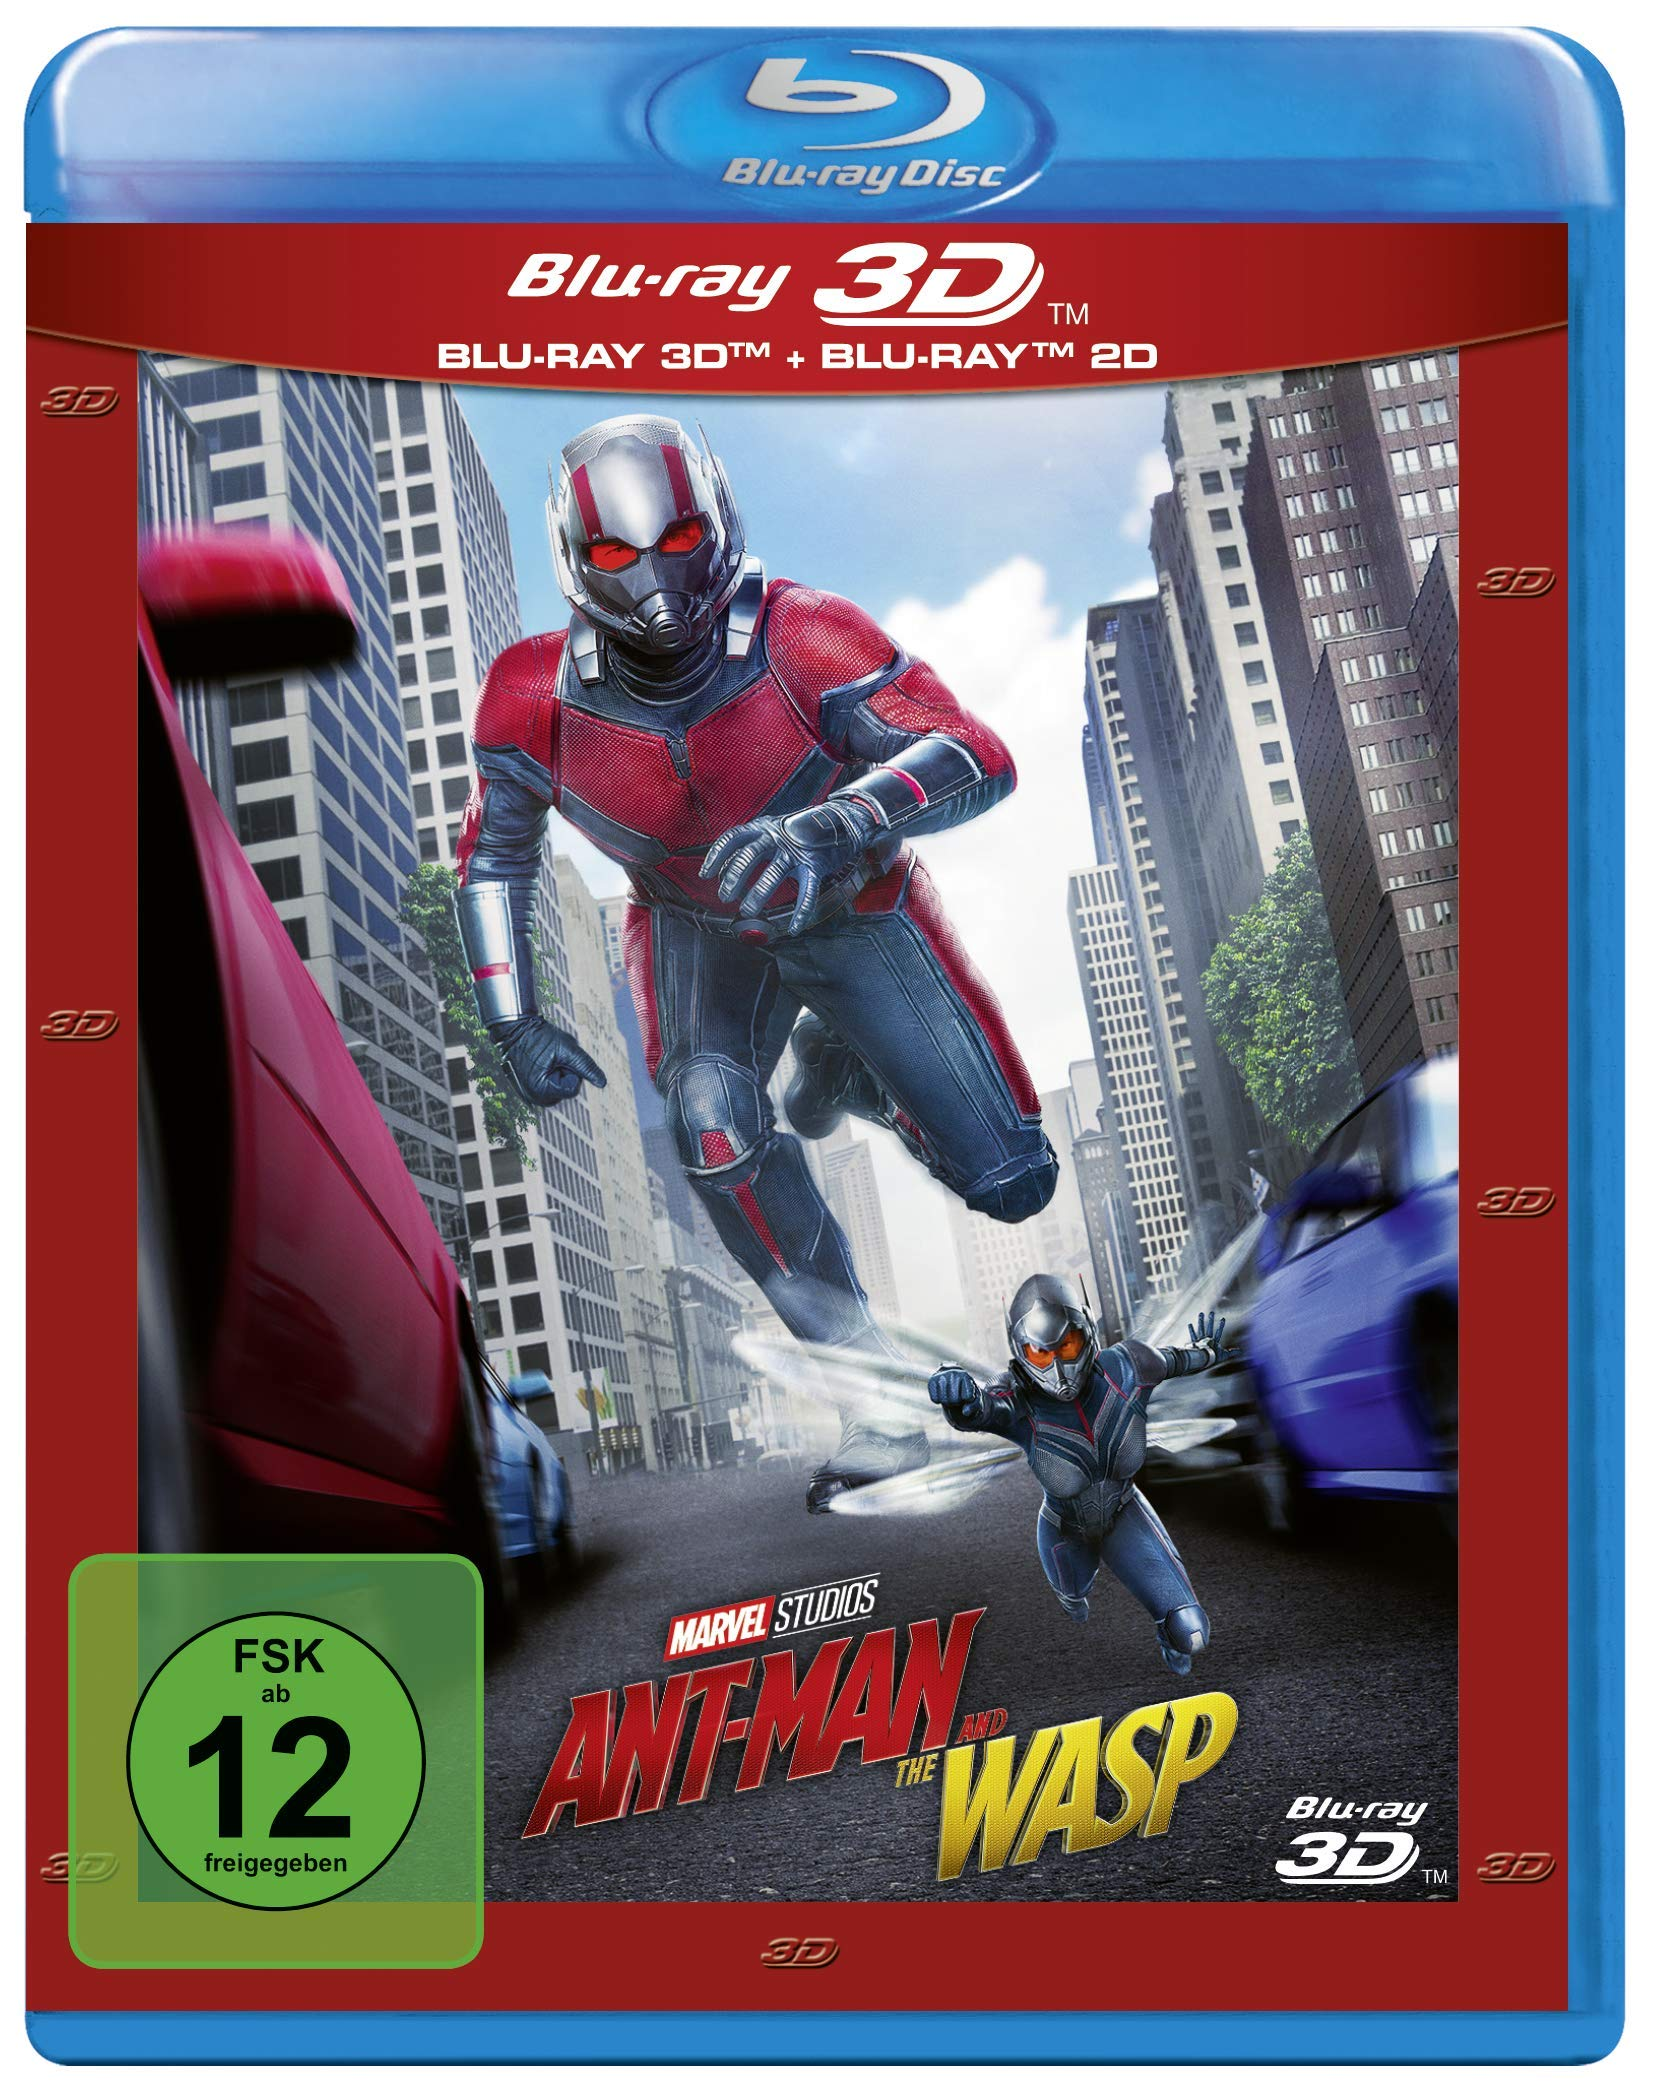 Ant-Man.and.the.Wasp.2018.3D.HSBS.German.Dubbed.RETAiL.DTS.DL.1080p.BluRay.x264-miHD